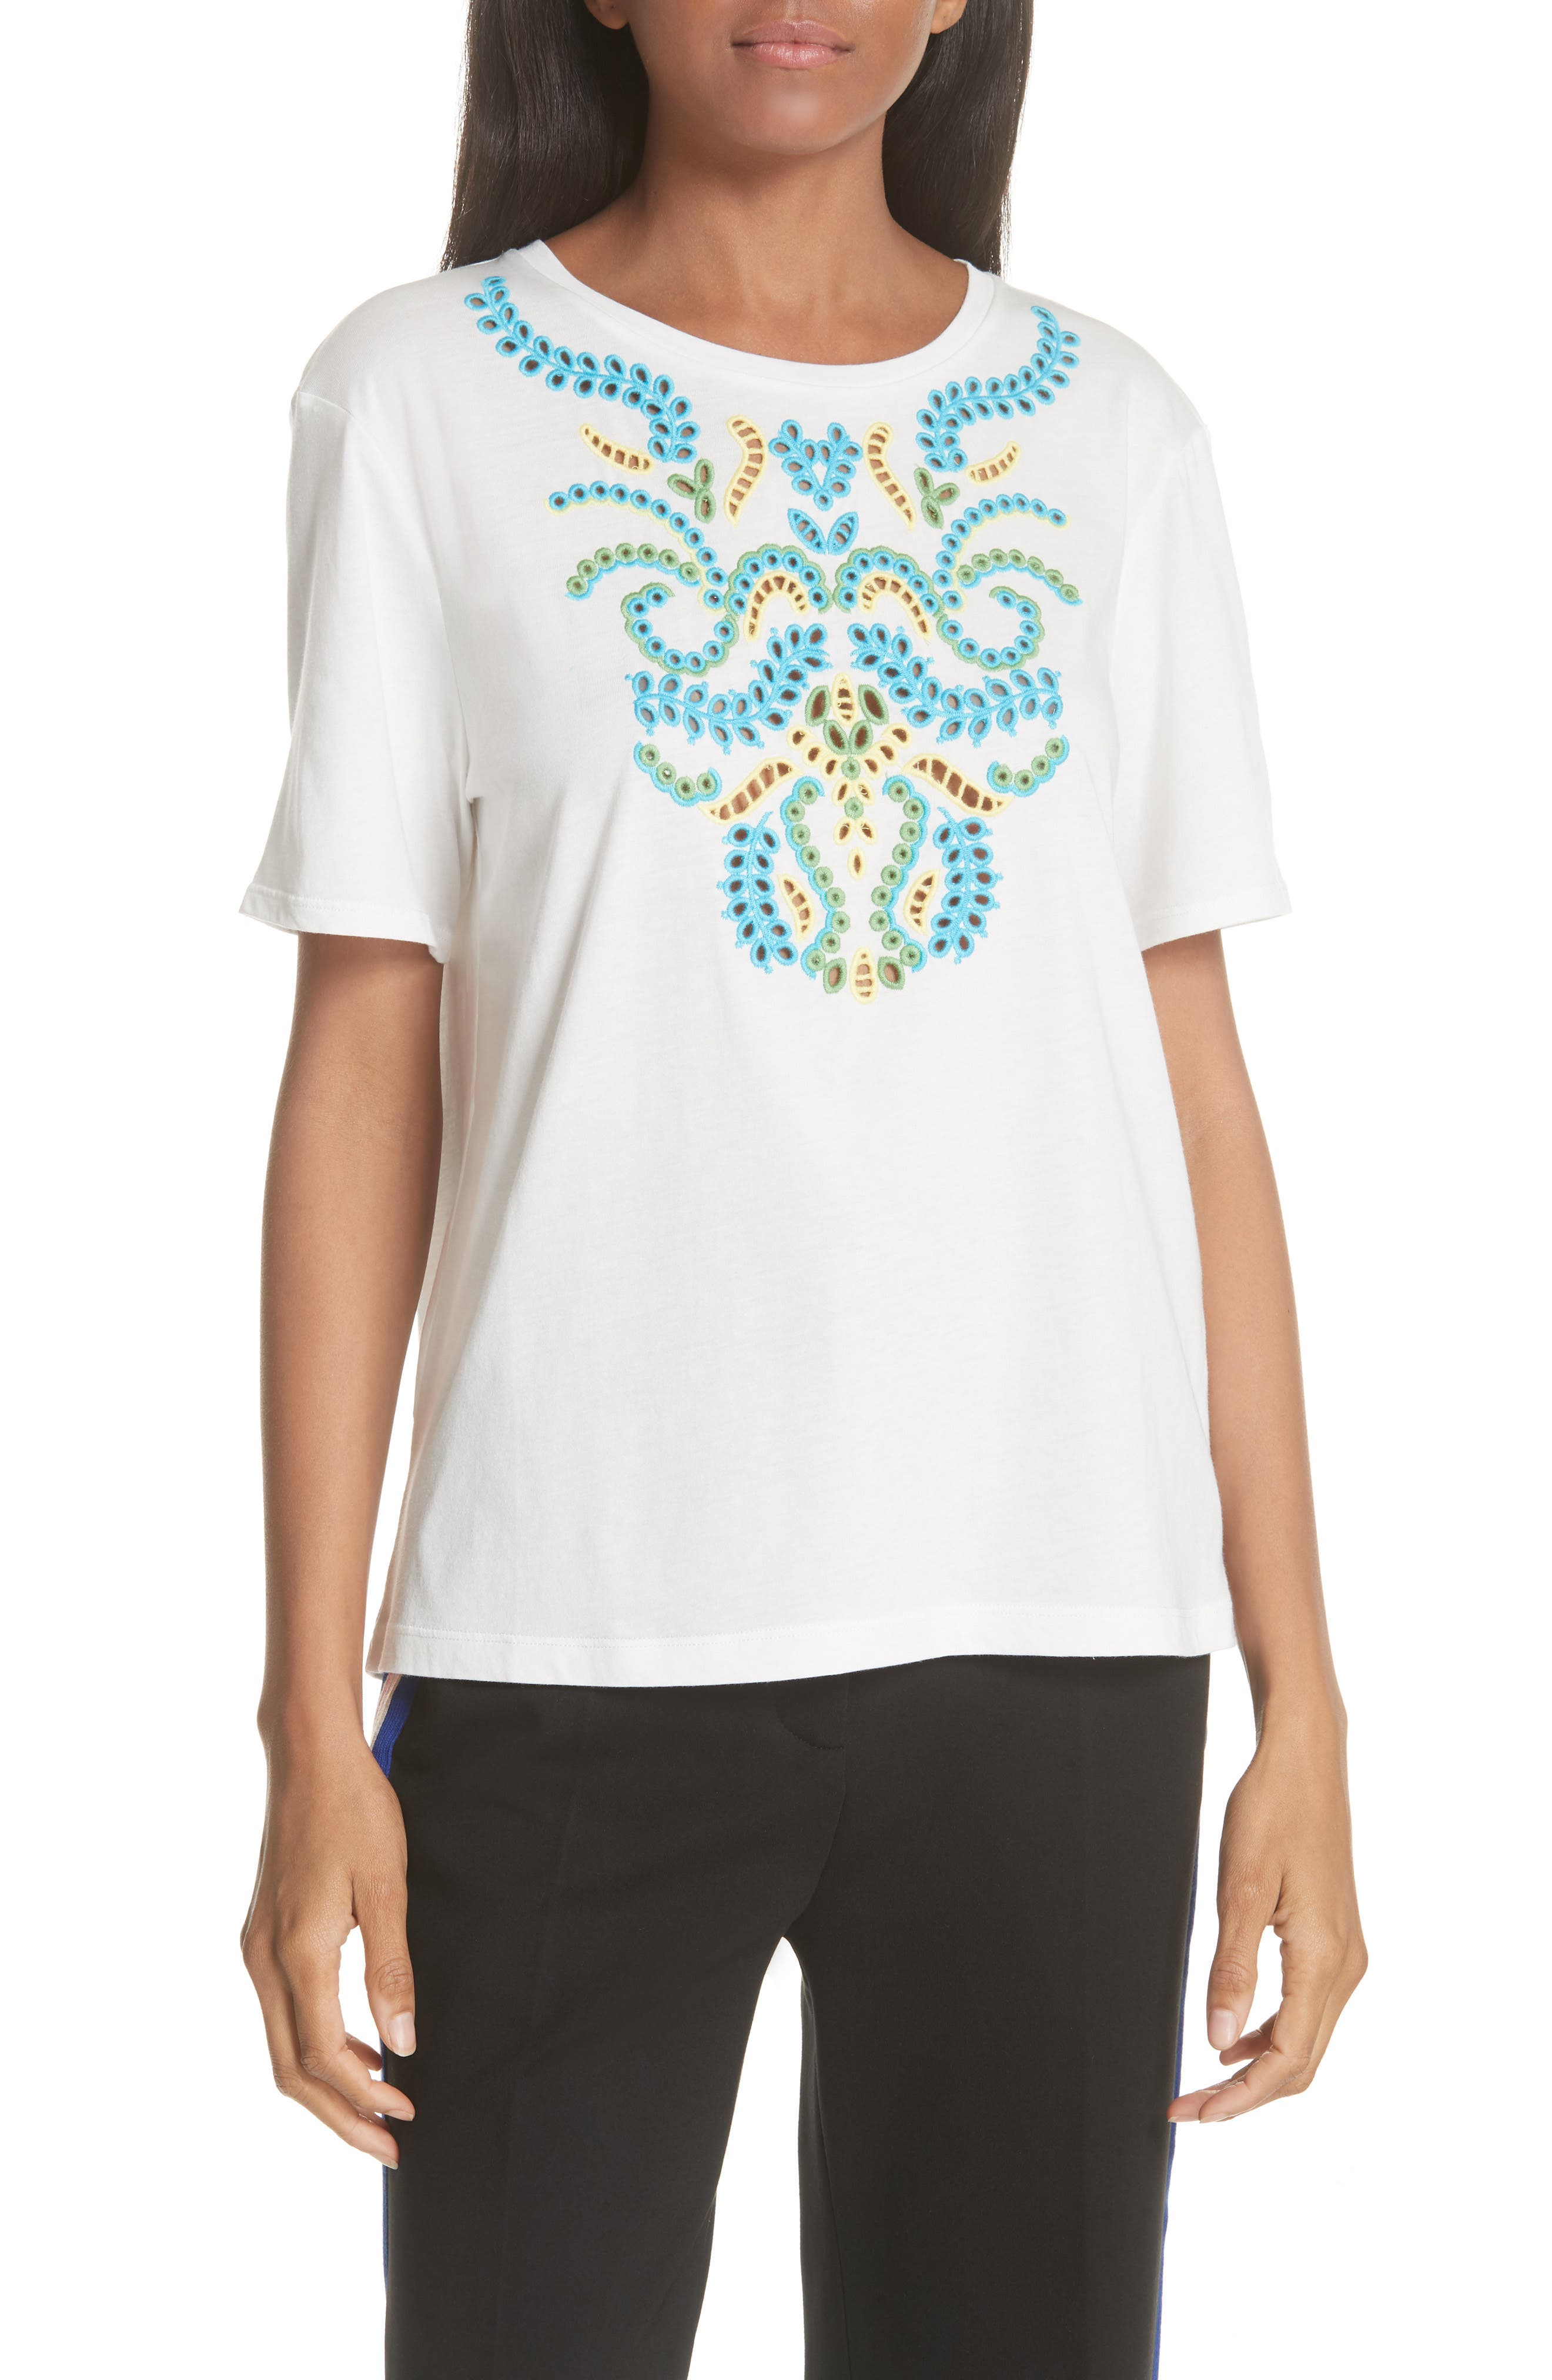 SANDRO,                             Embroidery Cotton Blend Tee,                             Main thumbnail 1, color,                             100